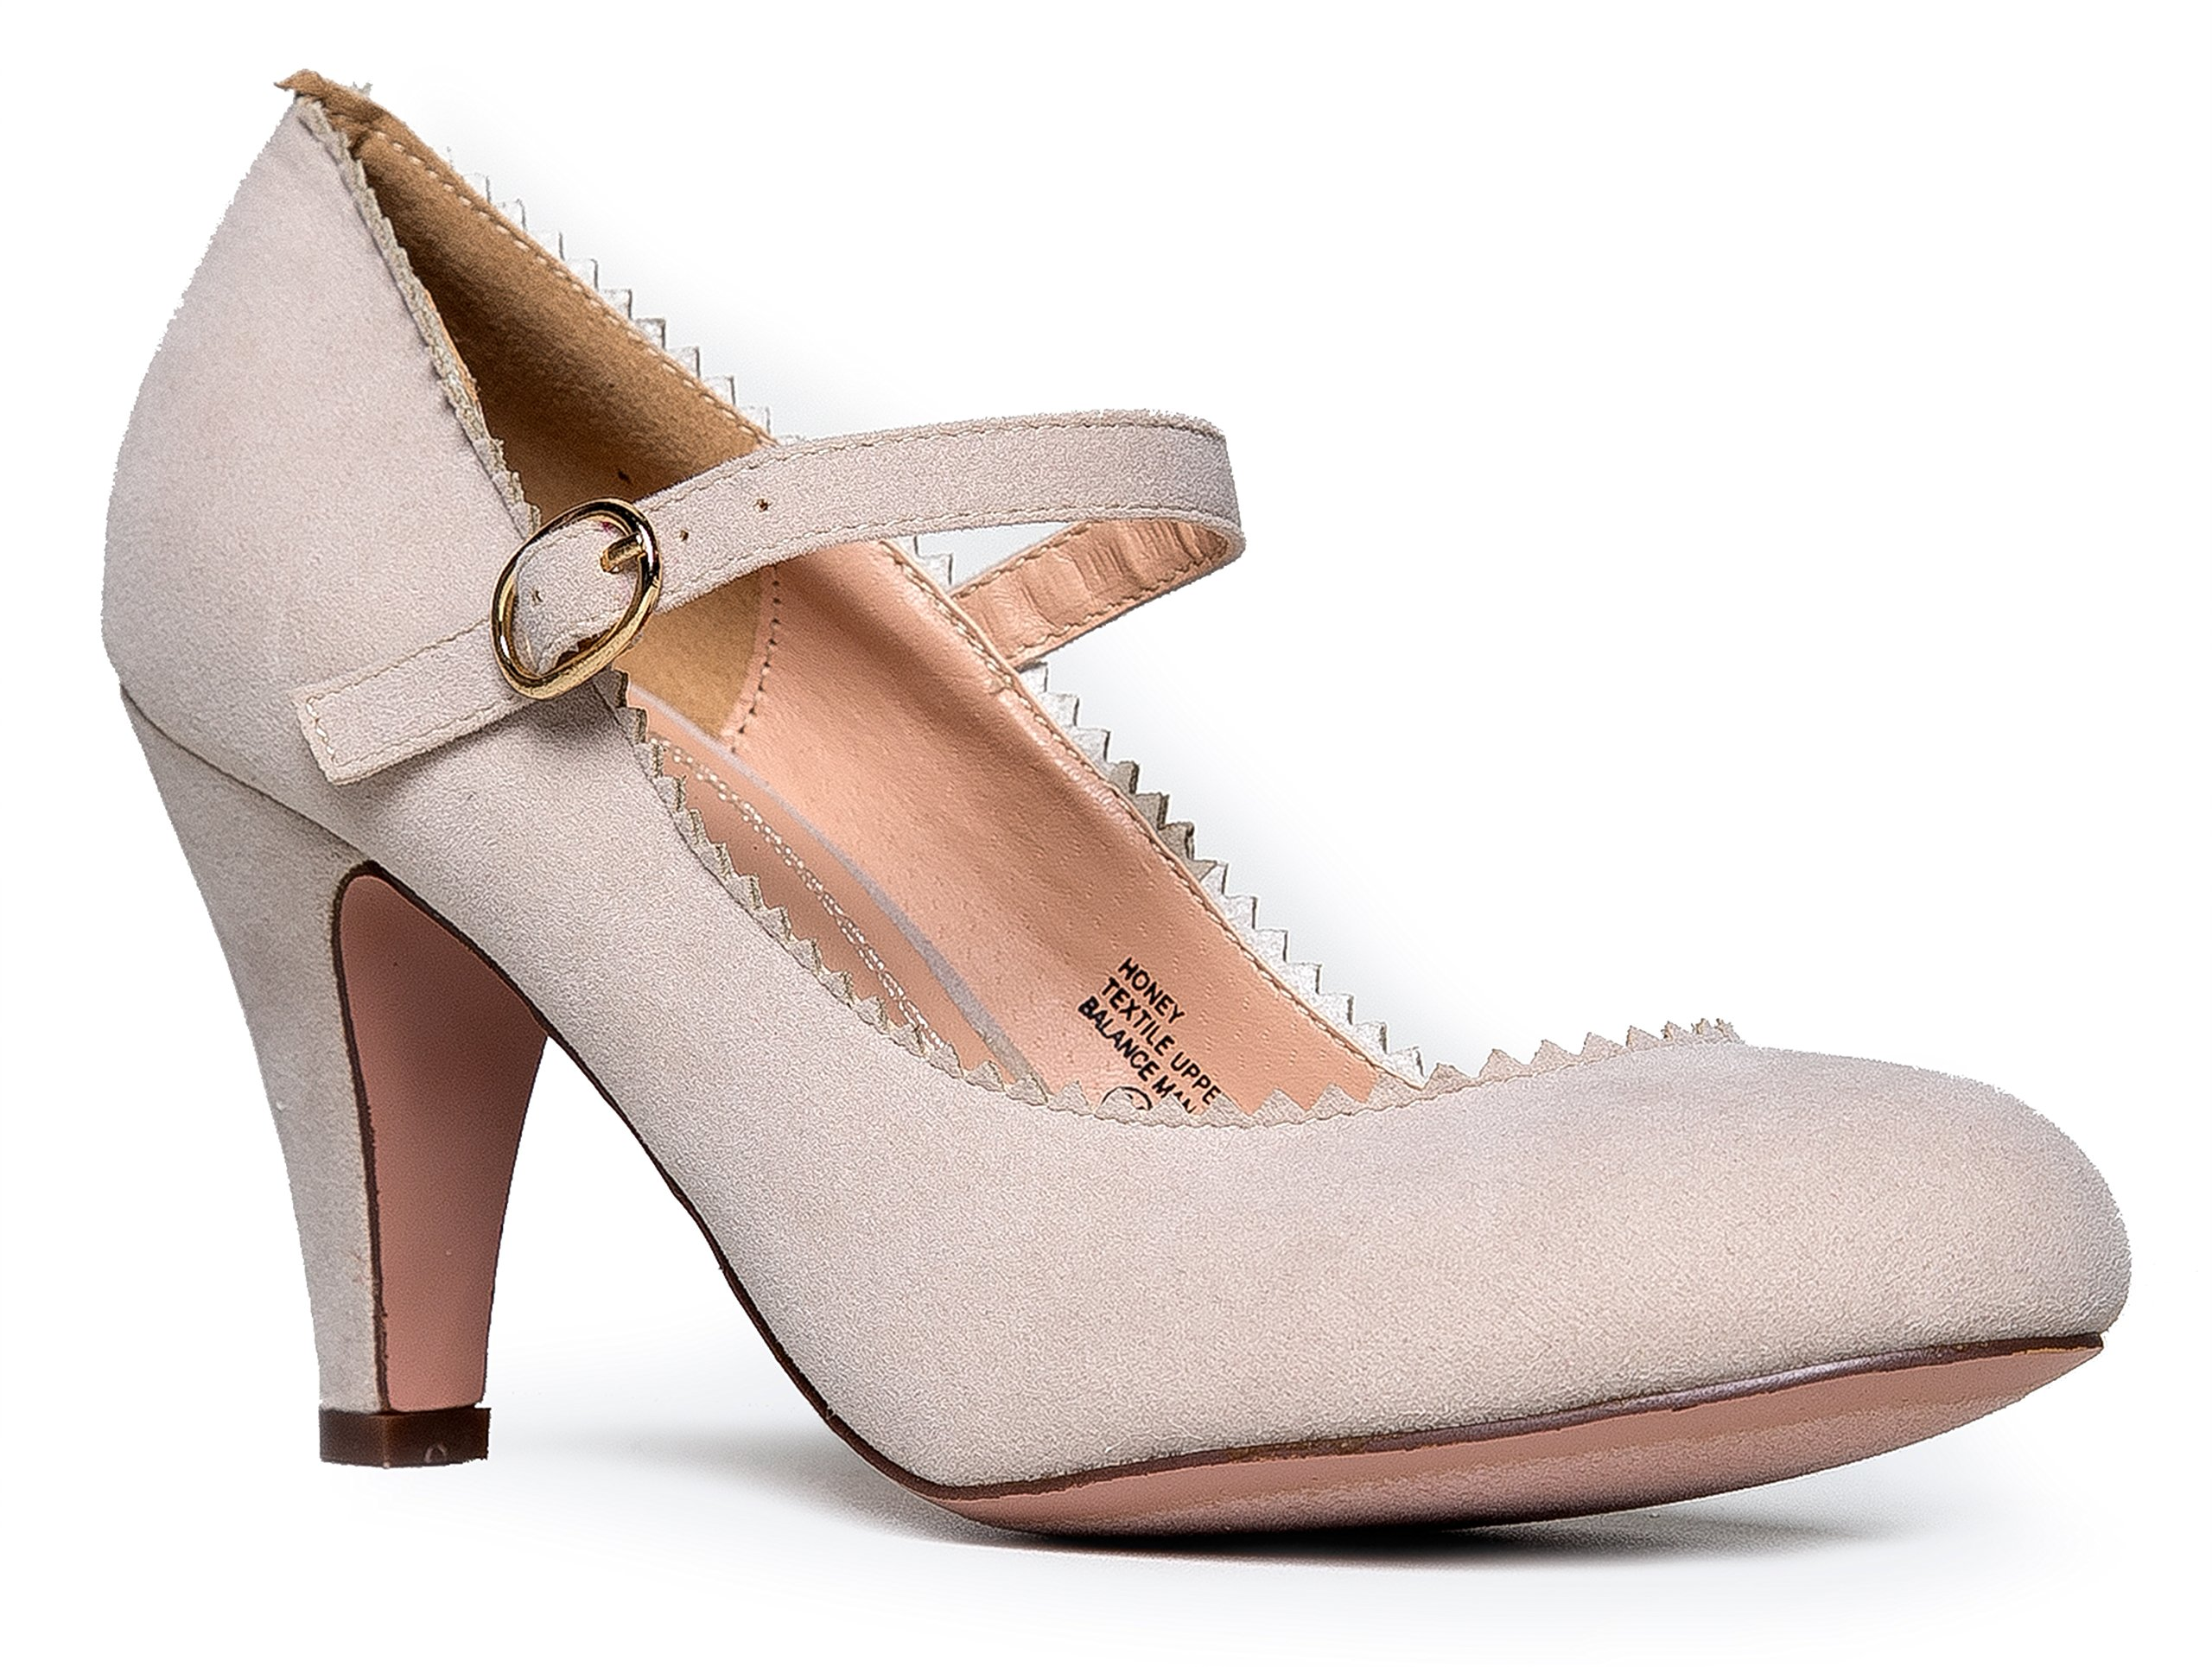 Mary Jane Kitten Heels, Vintage Retro Scallop Round Toe Shoe With An Adjustable Strap, 9 B(M) US, Nude Suede